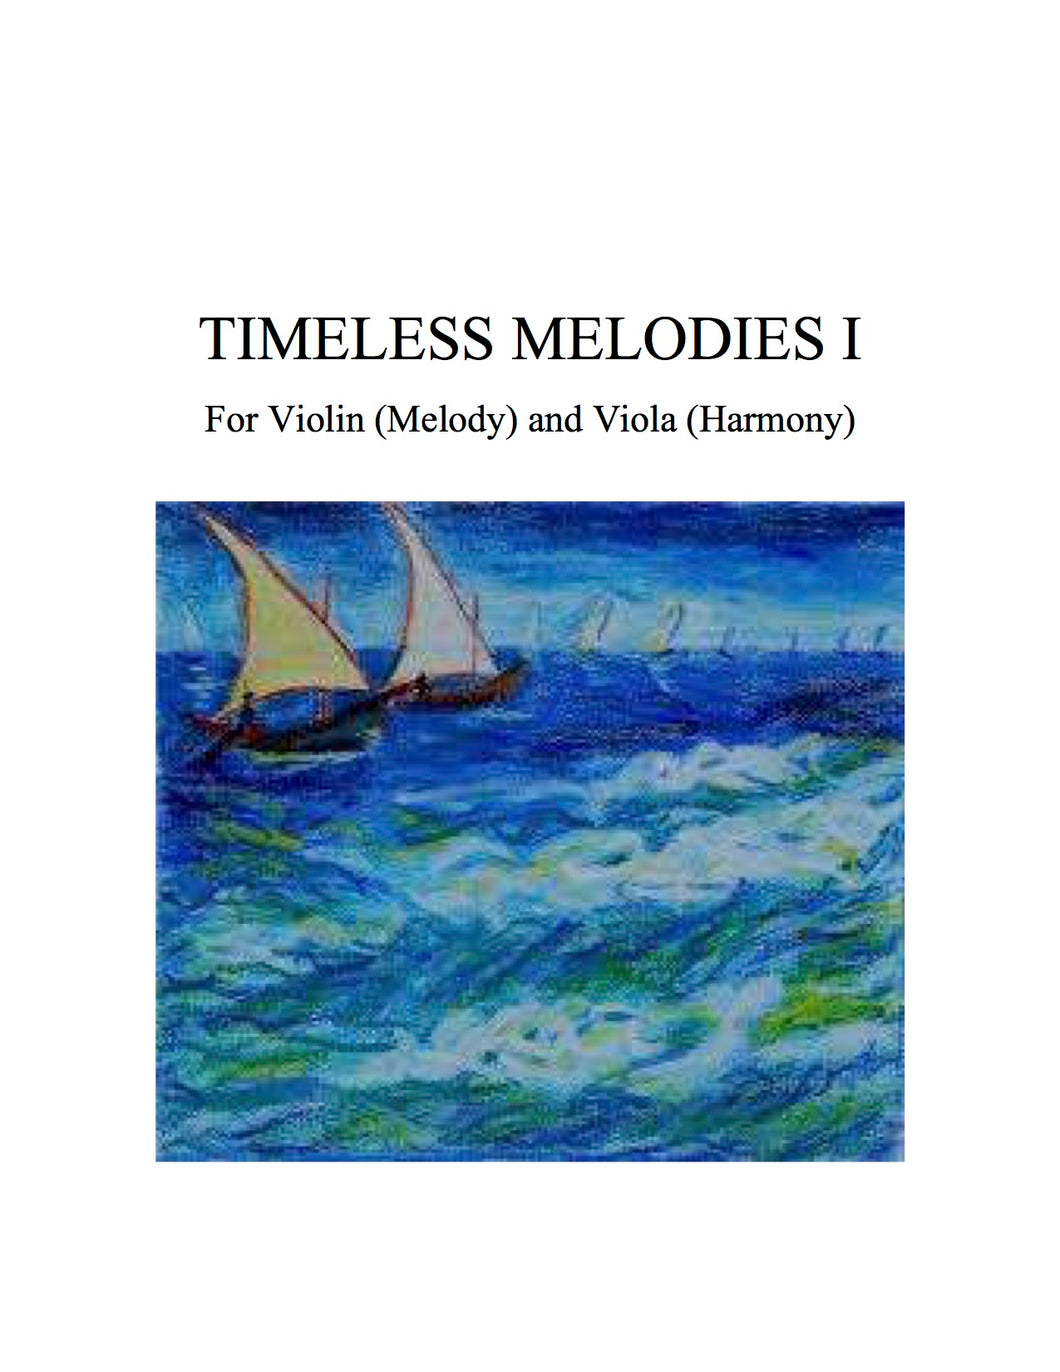 080 - Timeless Melodies I for Violin (Melody) and Viola (Harmony) [Solos for Young Violinists, Vol. I-II Favorites]